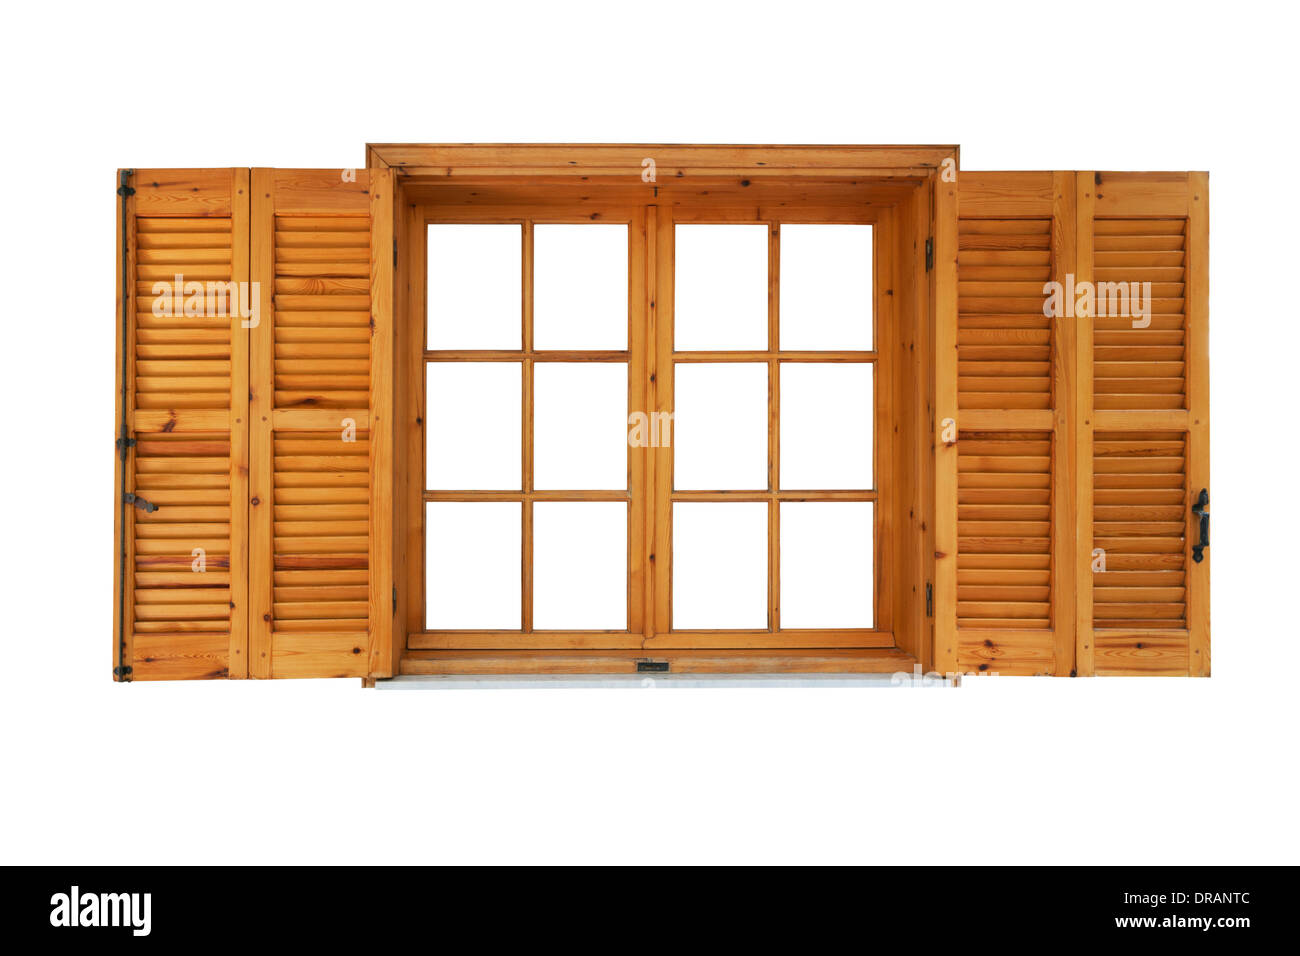 Wooden window with shutters opened exterior side isolated on white background - Stock Image